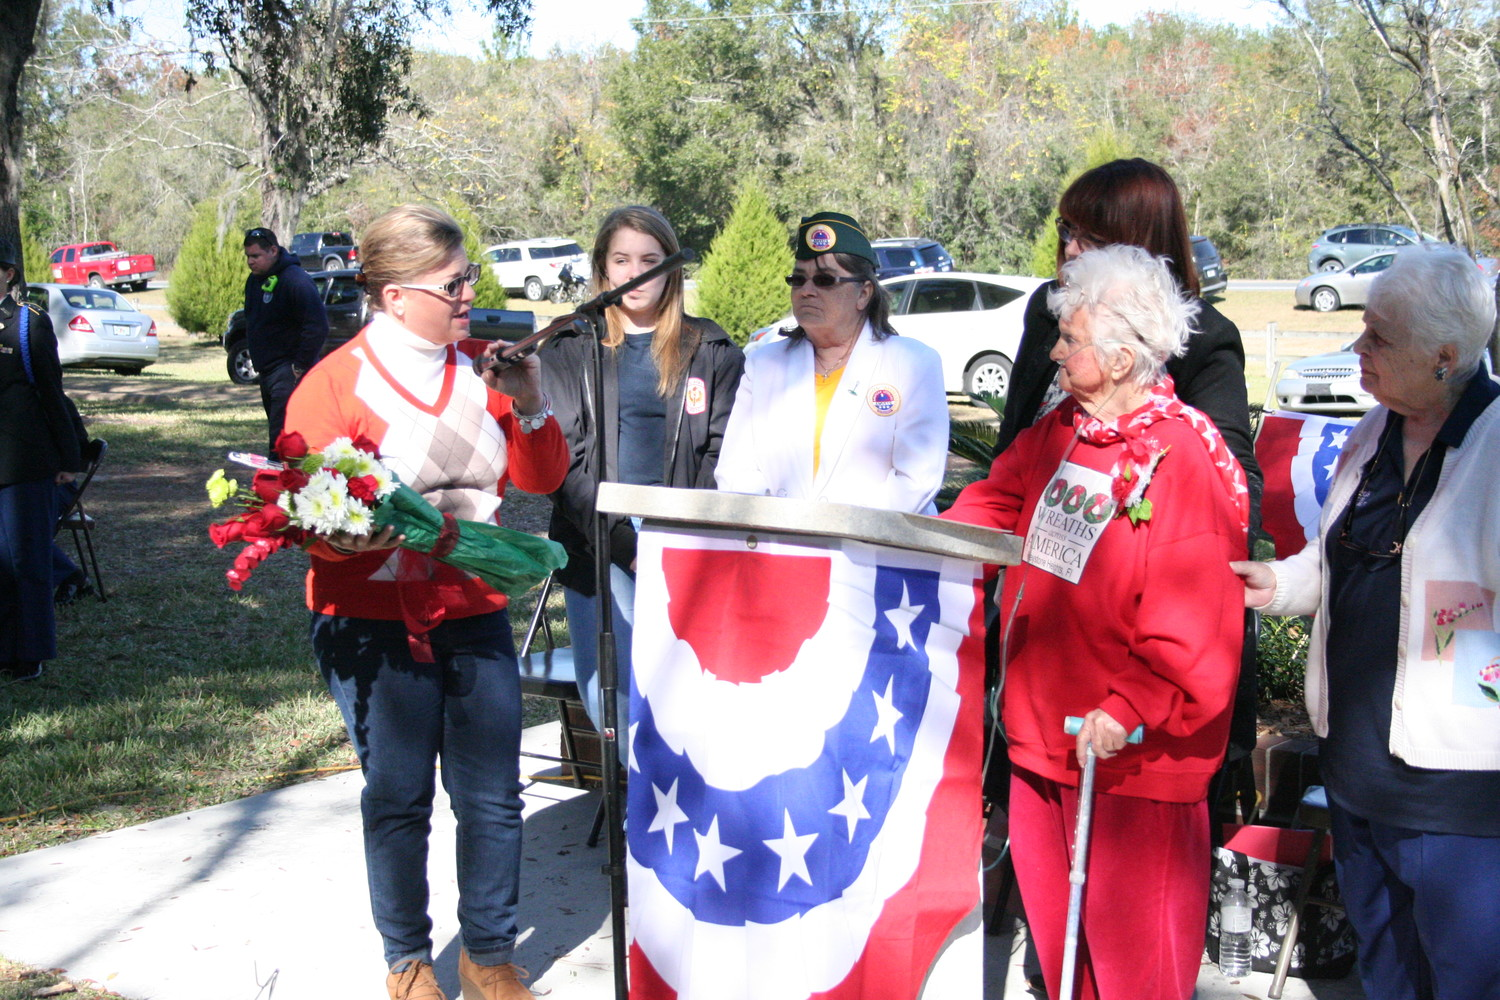 Mary Justino of Lake Asbury presented Joan Jones, 90, of Keystone Heights, a bouquet of roses and assorted flowers as a community thank gift for her 12 years of honoring veterans and coordinating different veterans' events at the Keystone Heights City Cemetery. Jones, a native of Australia, came to the U.S. at age 19 after meeting her husband during World War II.